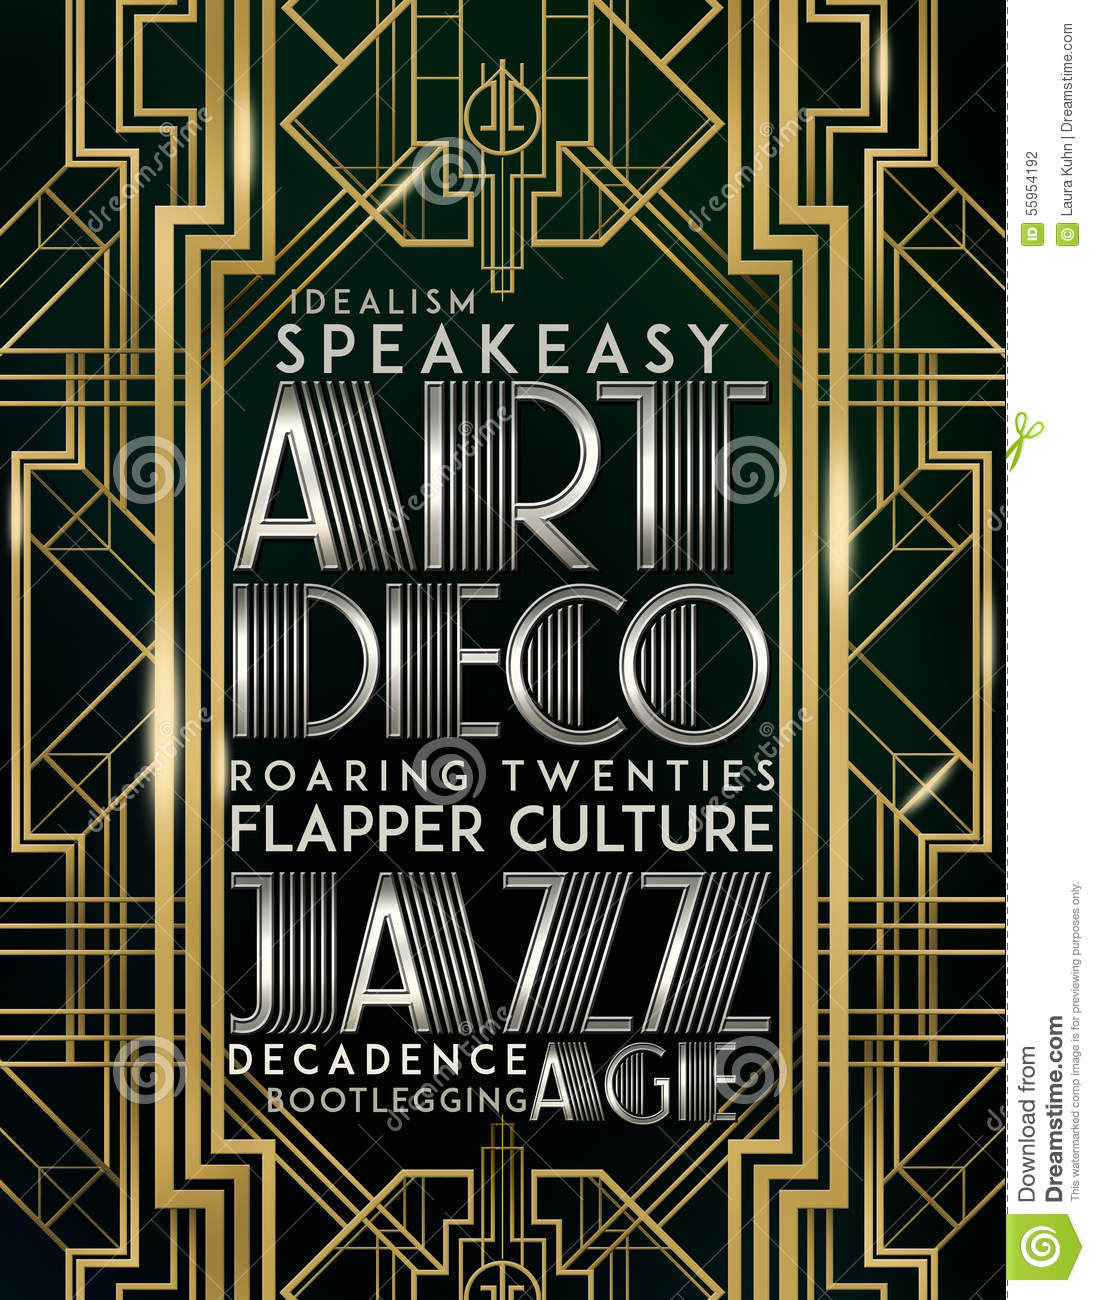 Estilo Art Deco Jazz Era de Gatsby